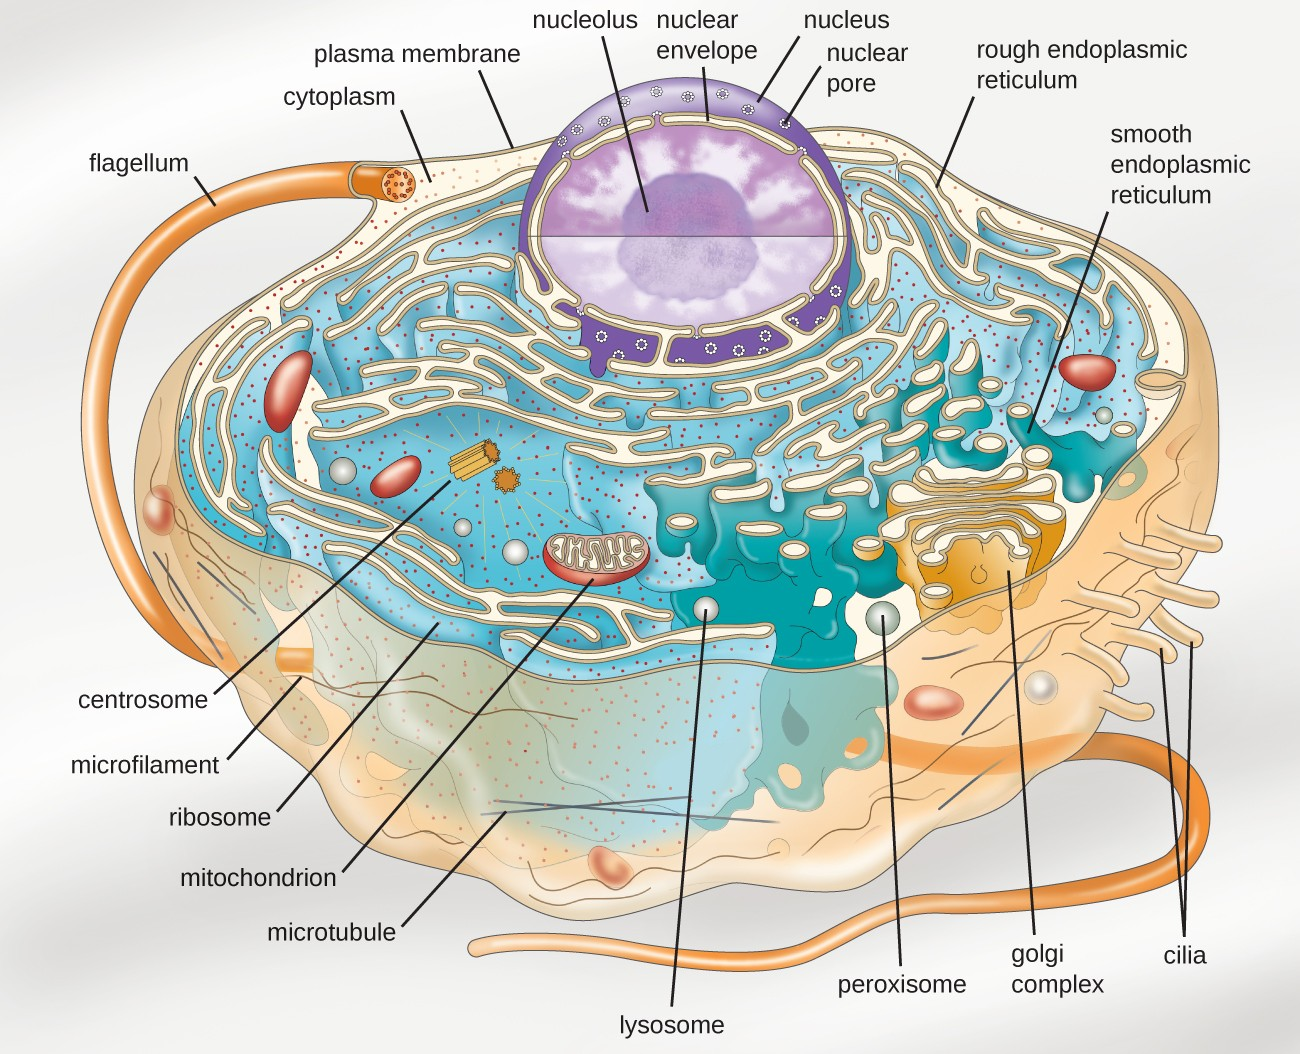 eukaryotic plant cell diagram 80 series wiring unique characteristics of cells microbiology